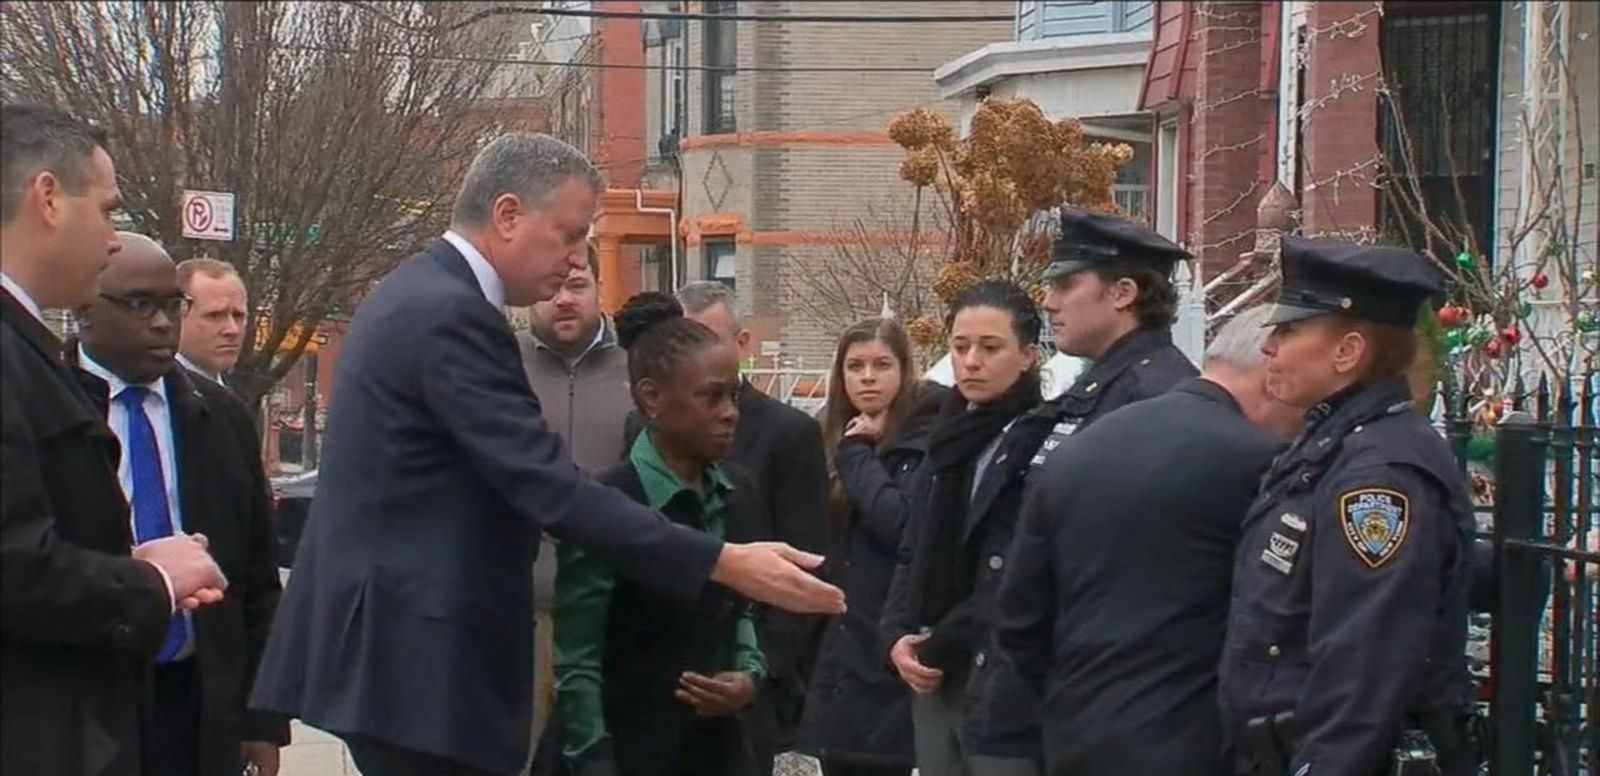 VIDEO: New York Mayor Bill De Blasio and Police Commissioner Bill Bratton visit the homes of slain NYPD officer Rafael Ramos.